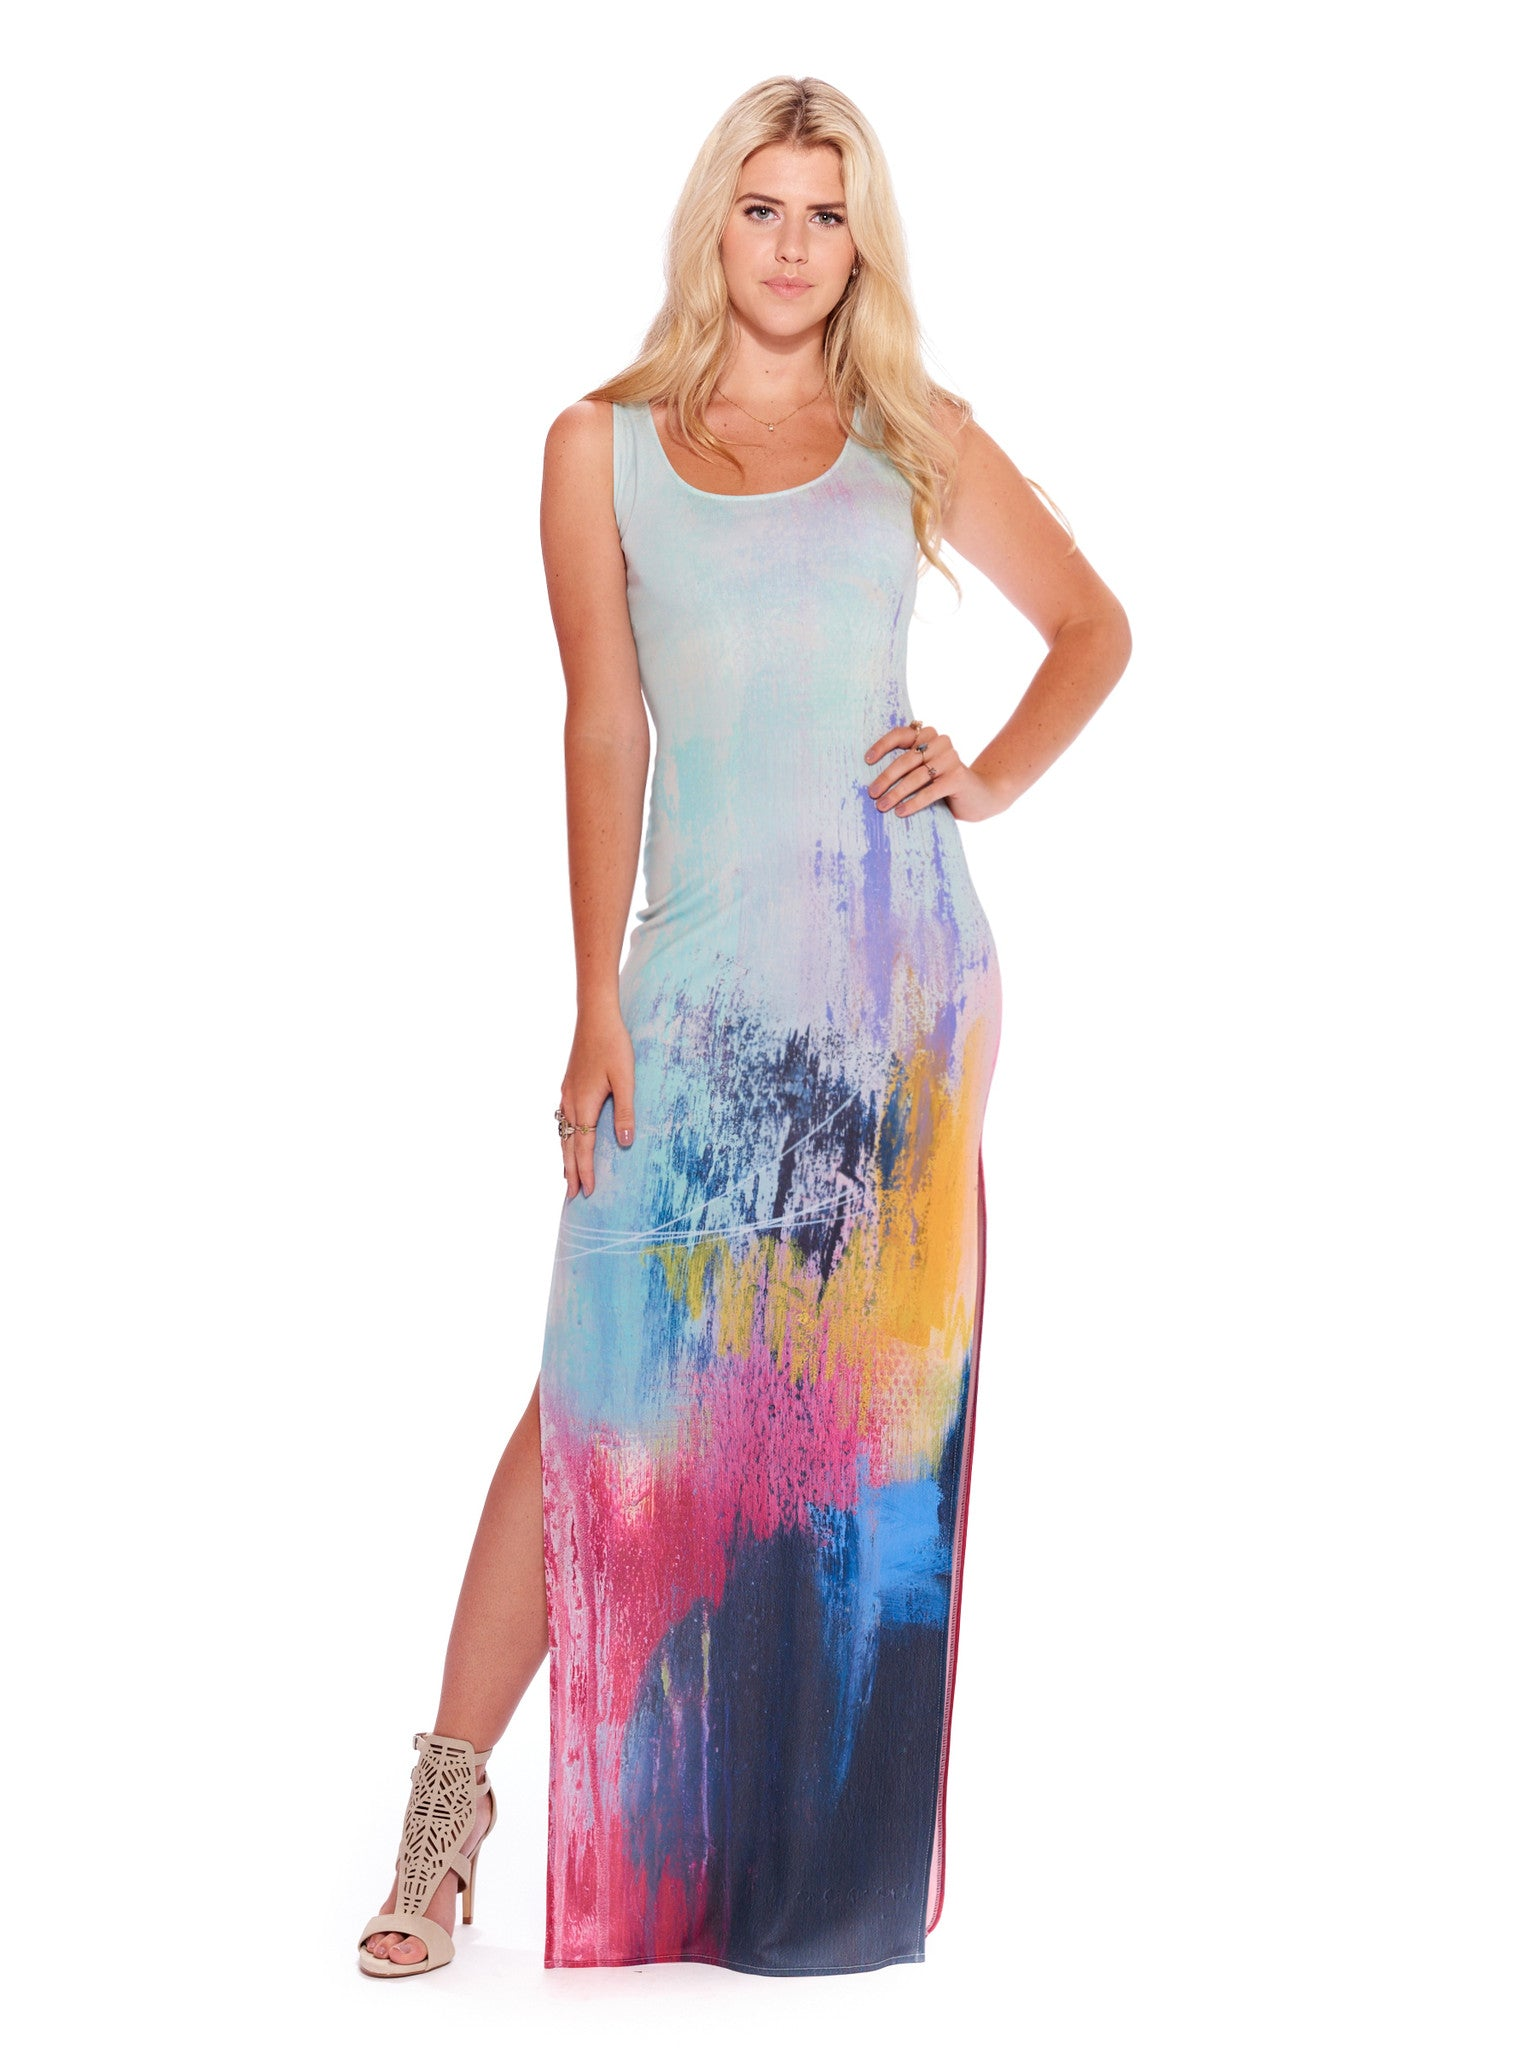 Tied Together With a Smile Maxi Dress